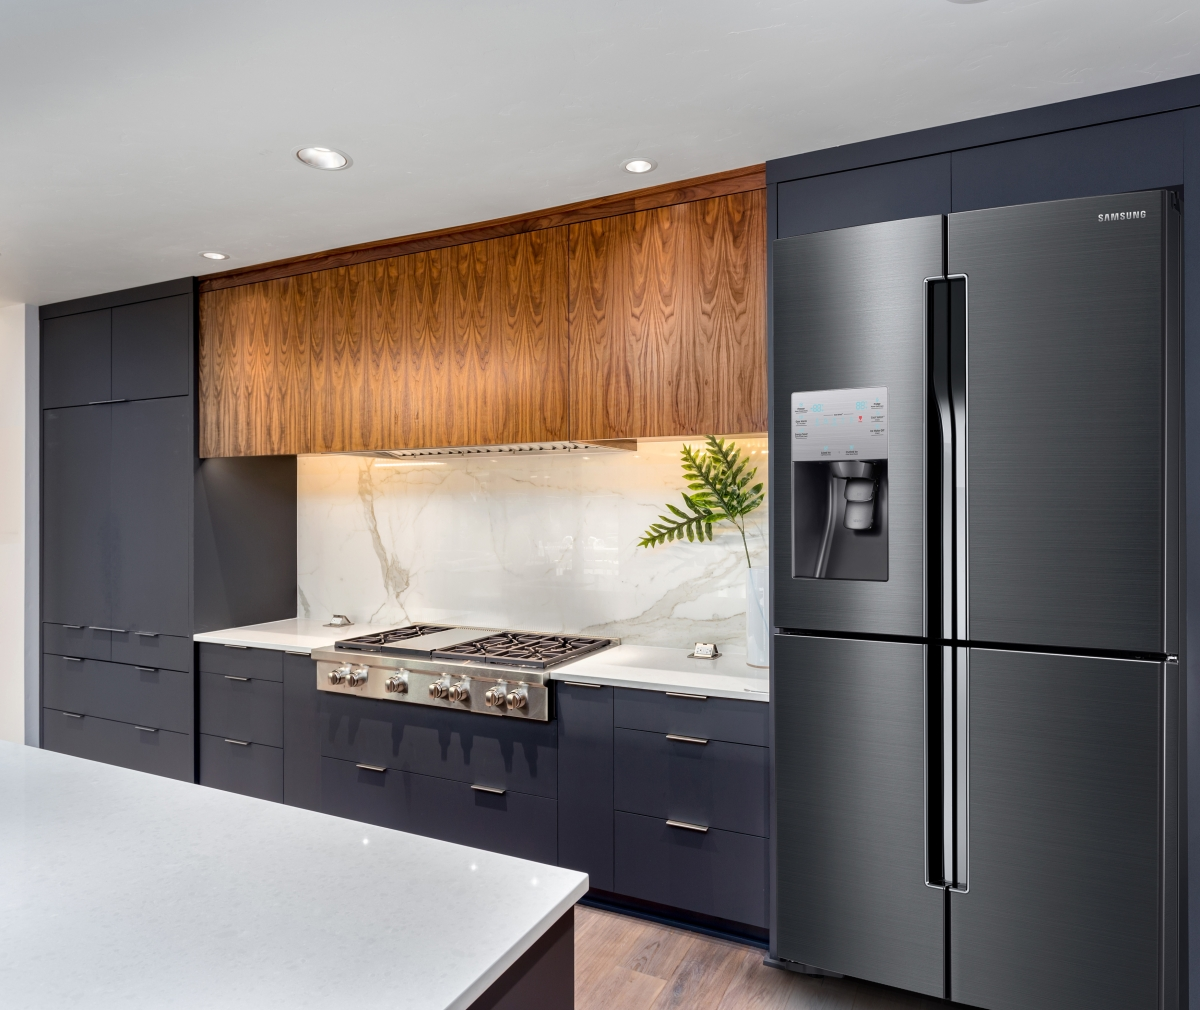 5 reasons to update your kitchen with a Samsung French Door Fridge